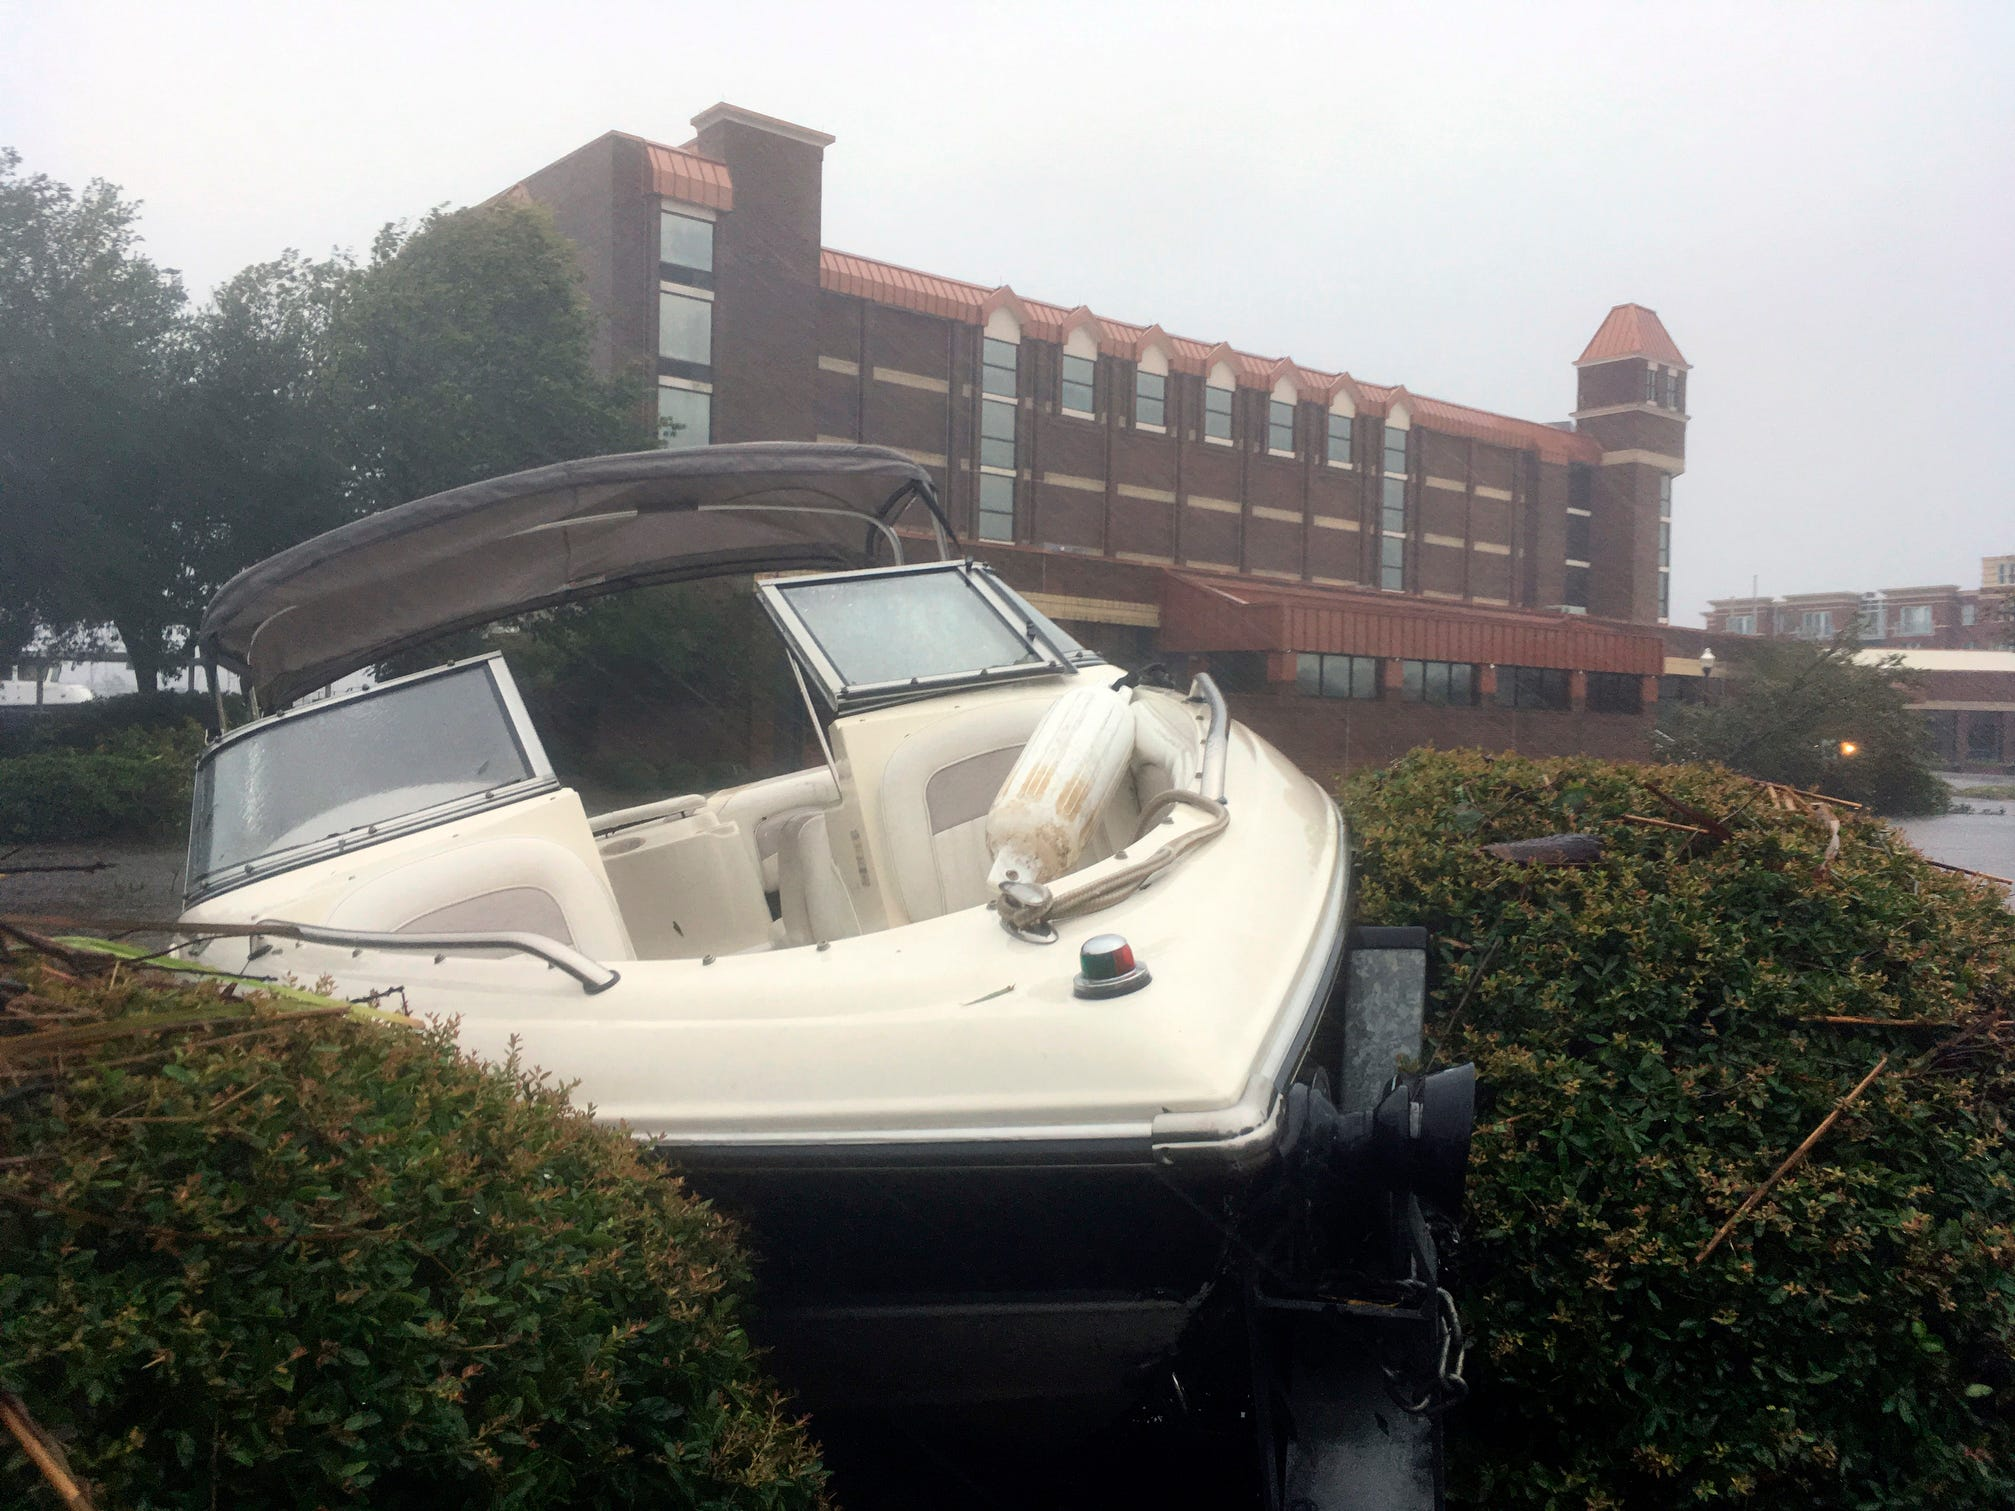 A speed boat sits wedged in bushes in the parking lot of a waterfront hotel in New Bern, N.C., on Frida. Winds and rains from Hurricane Florence caused the Neuse River to swell, swamping the coastal city.